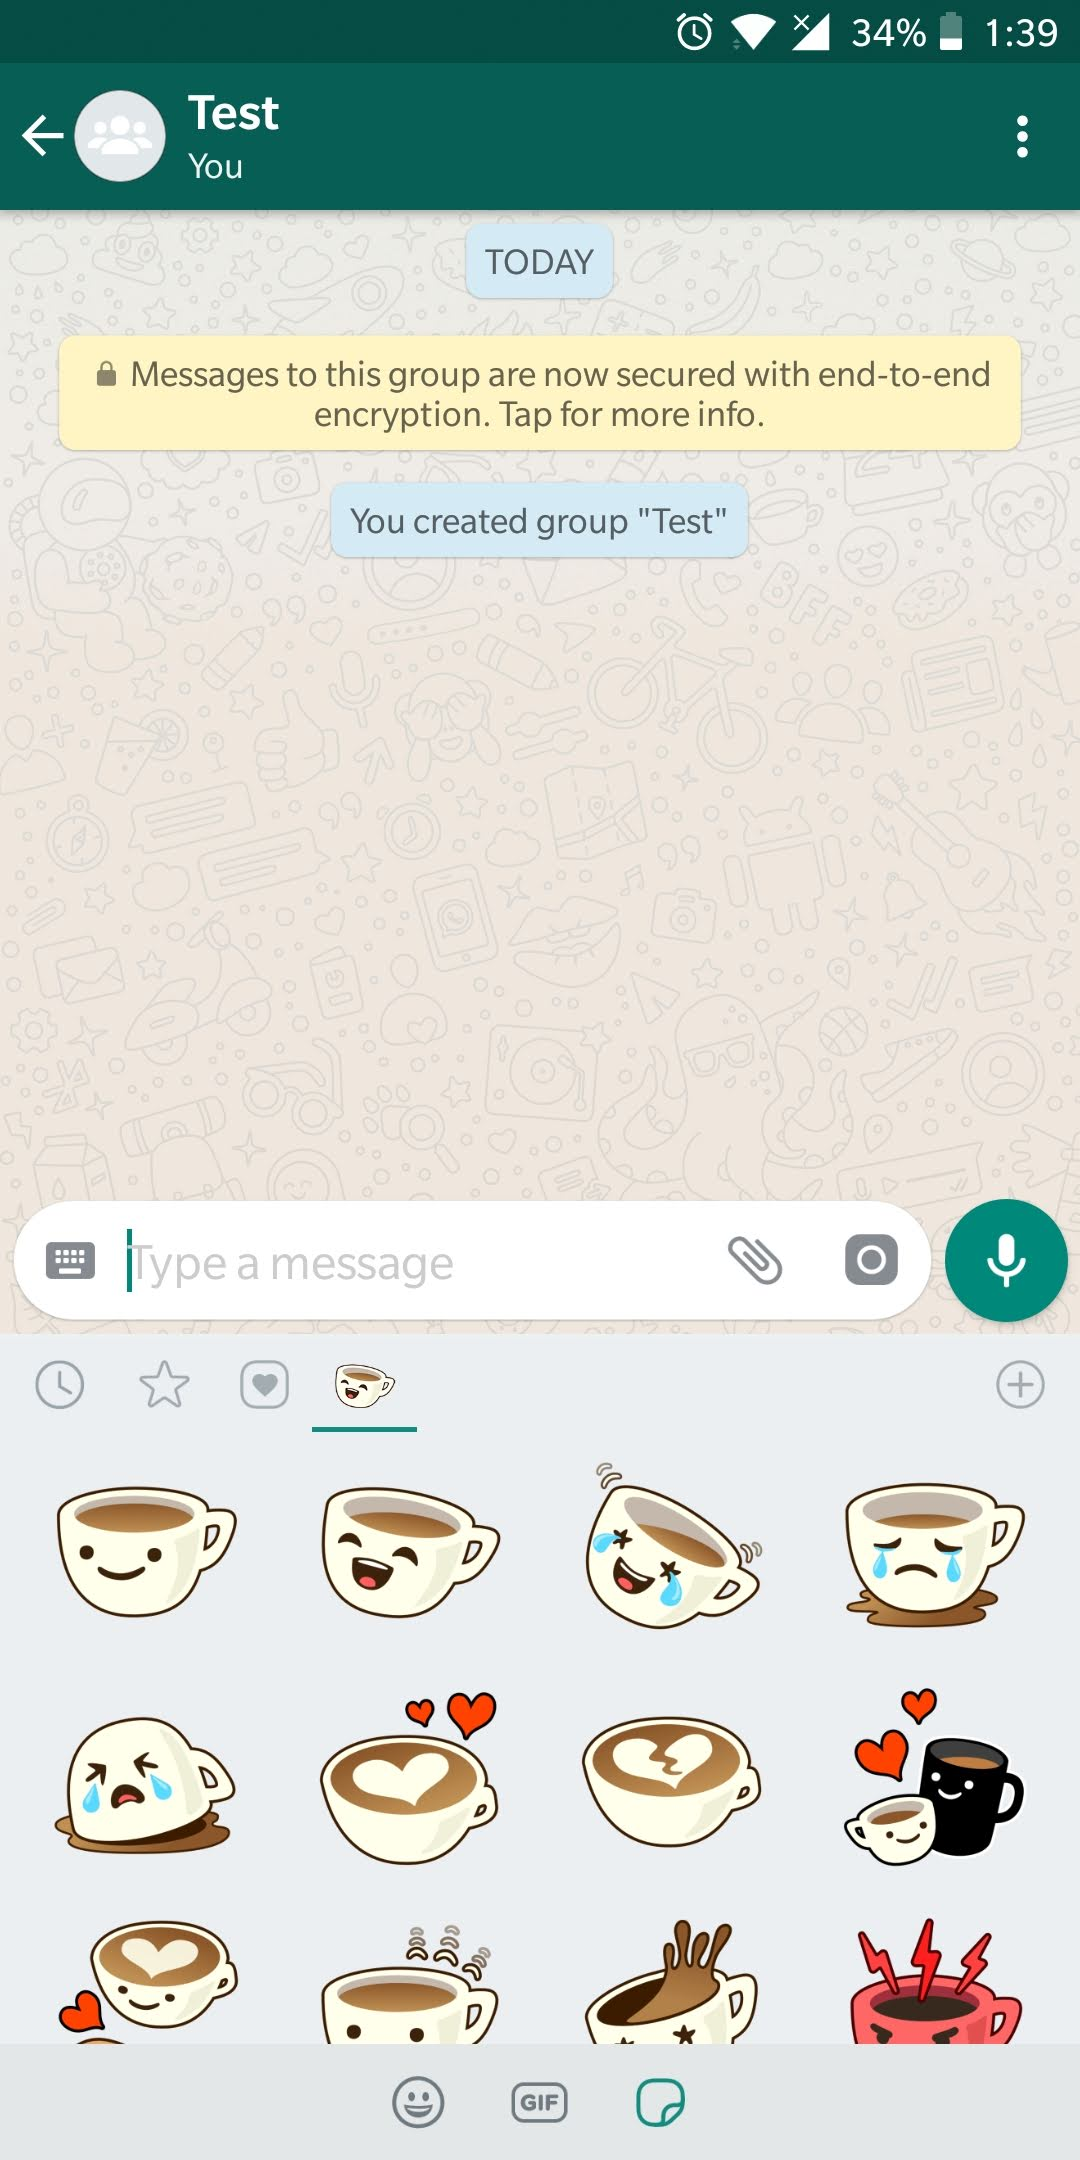 Sticker pack available by default on WhatsApp